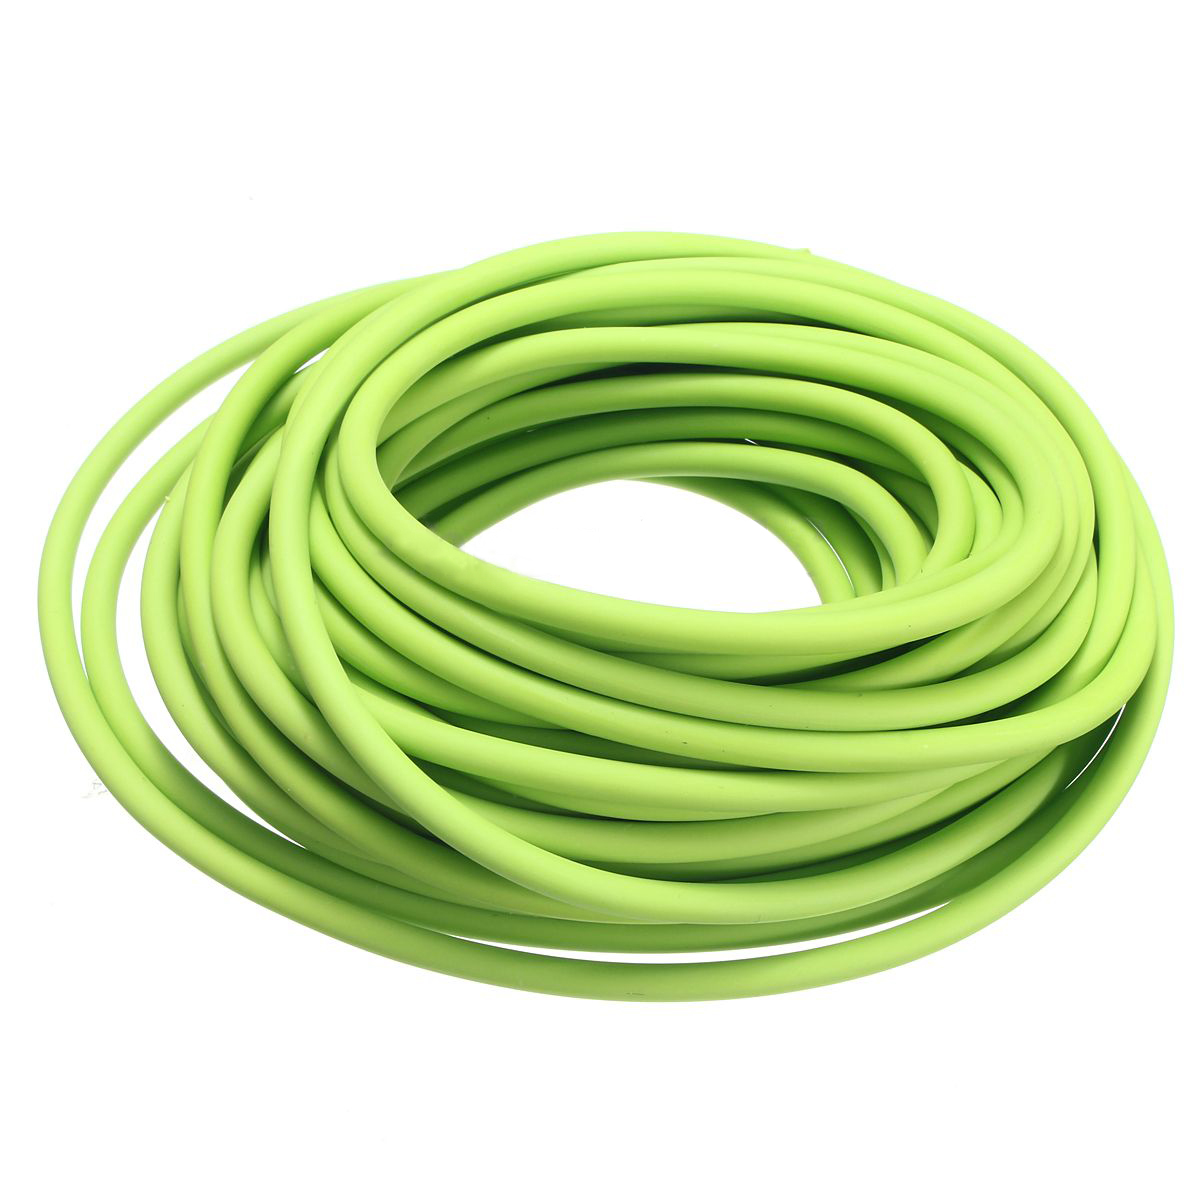 Exercise Rubber Bands Green: PROMOTION!Tubing Exercise Rubber Resistance Band Catapult